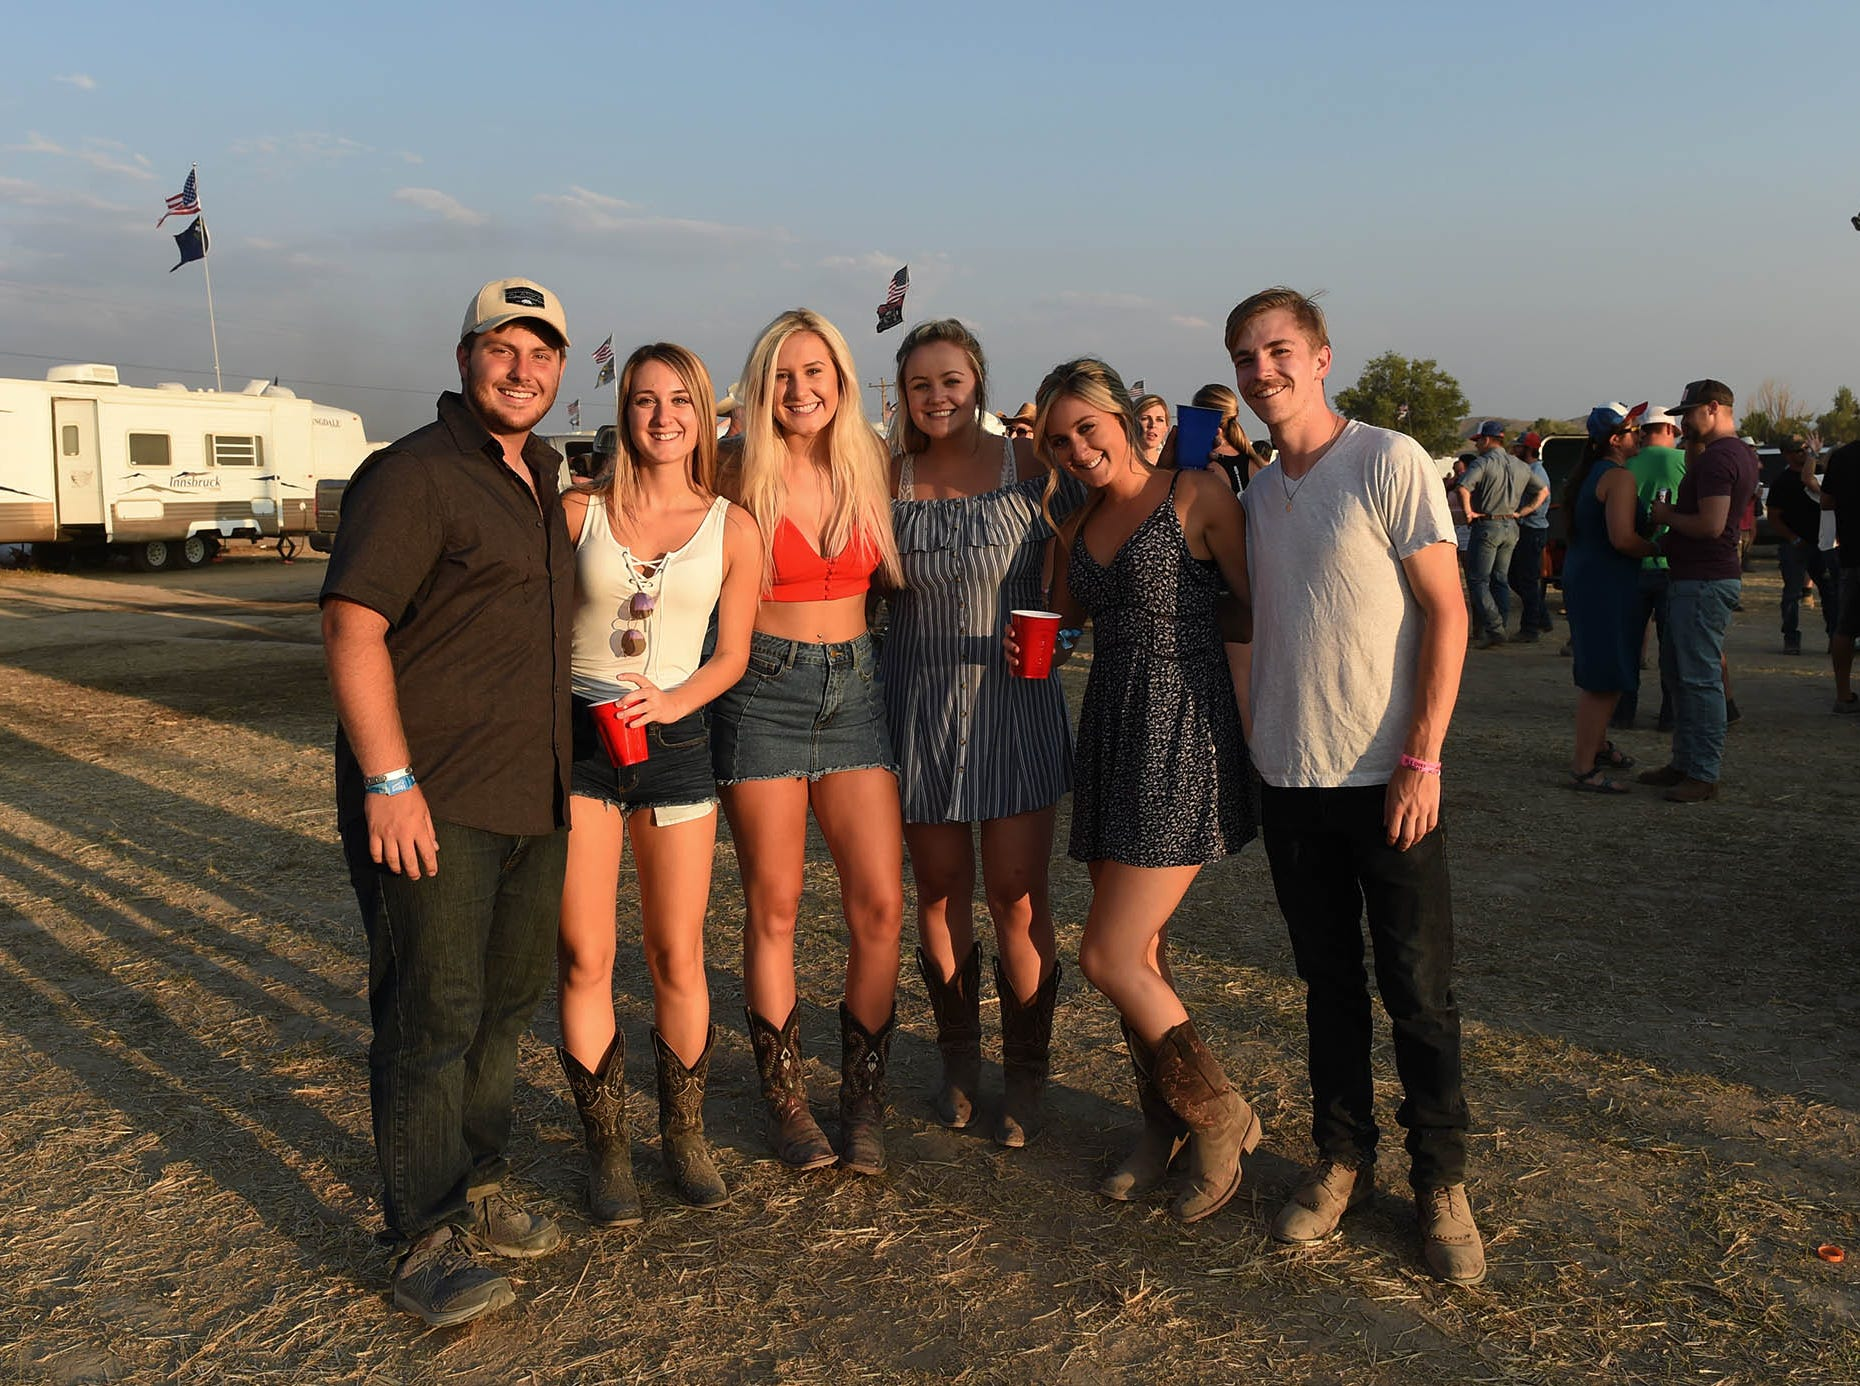 Thousands of country fans attended Friday's Night in the Country on July 27, 2018.